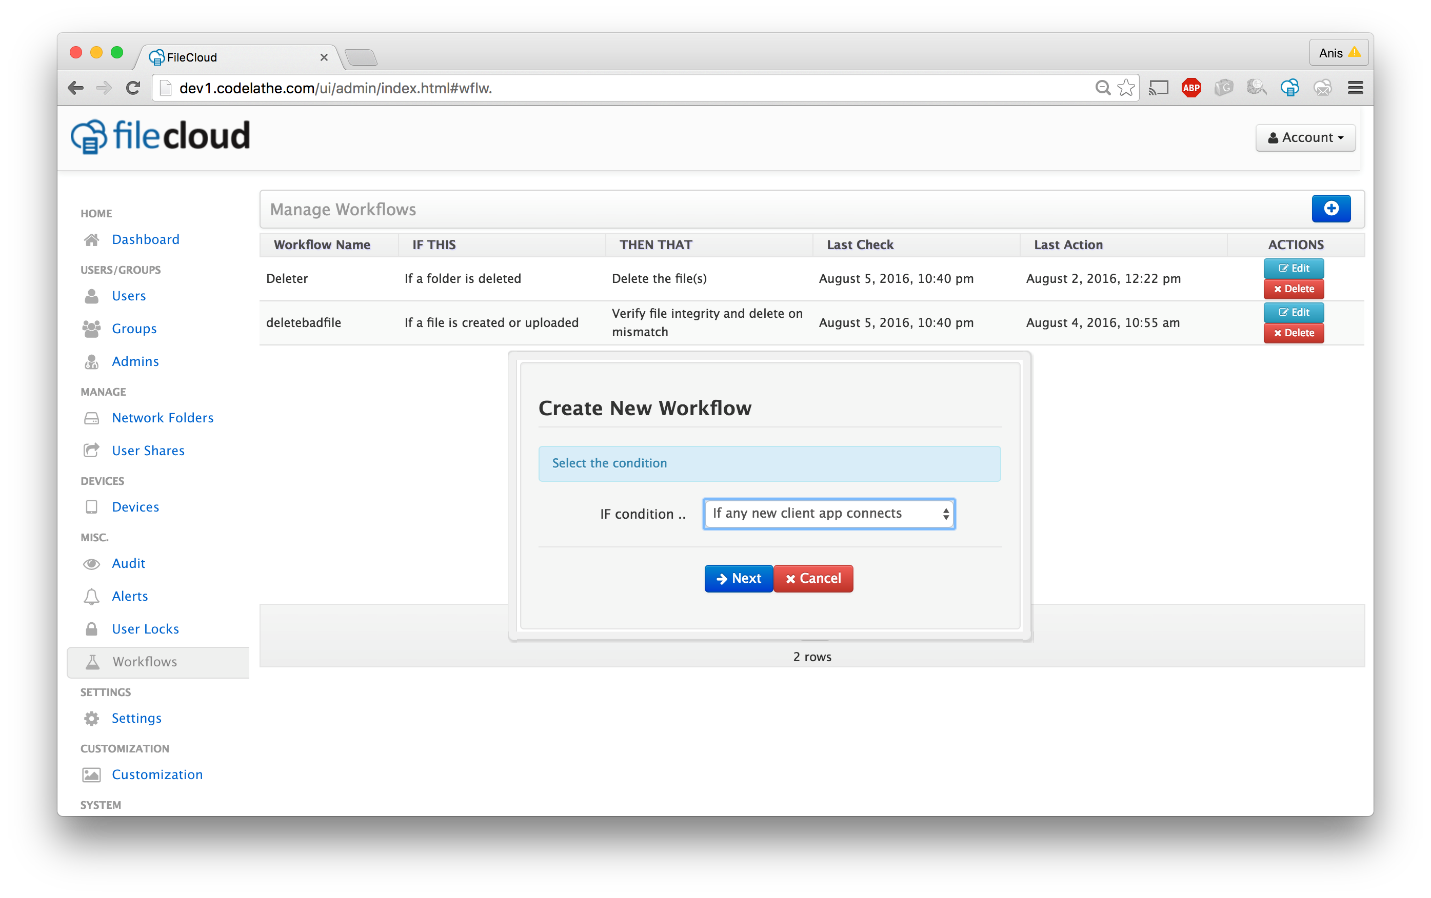 FileCloud v13 workflow automation